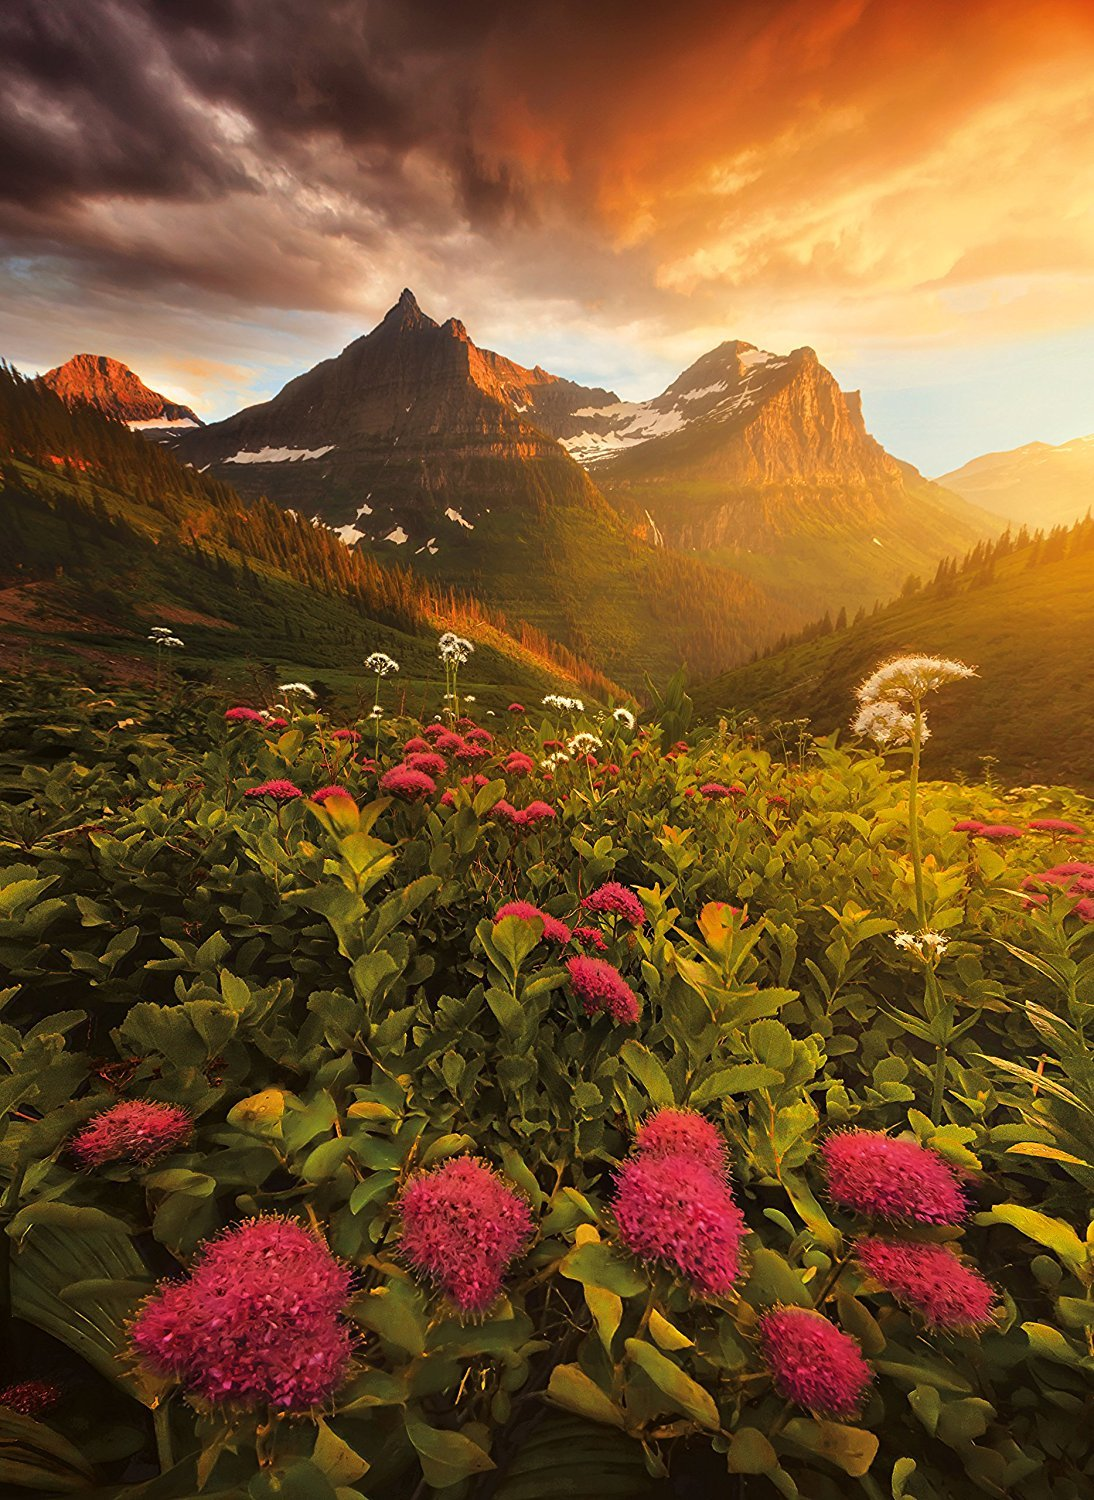 clementoni jigsaw puzzle 1000 pieces of matterhorn cervino, multimedia graphics effects music free d as-it-fades